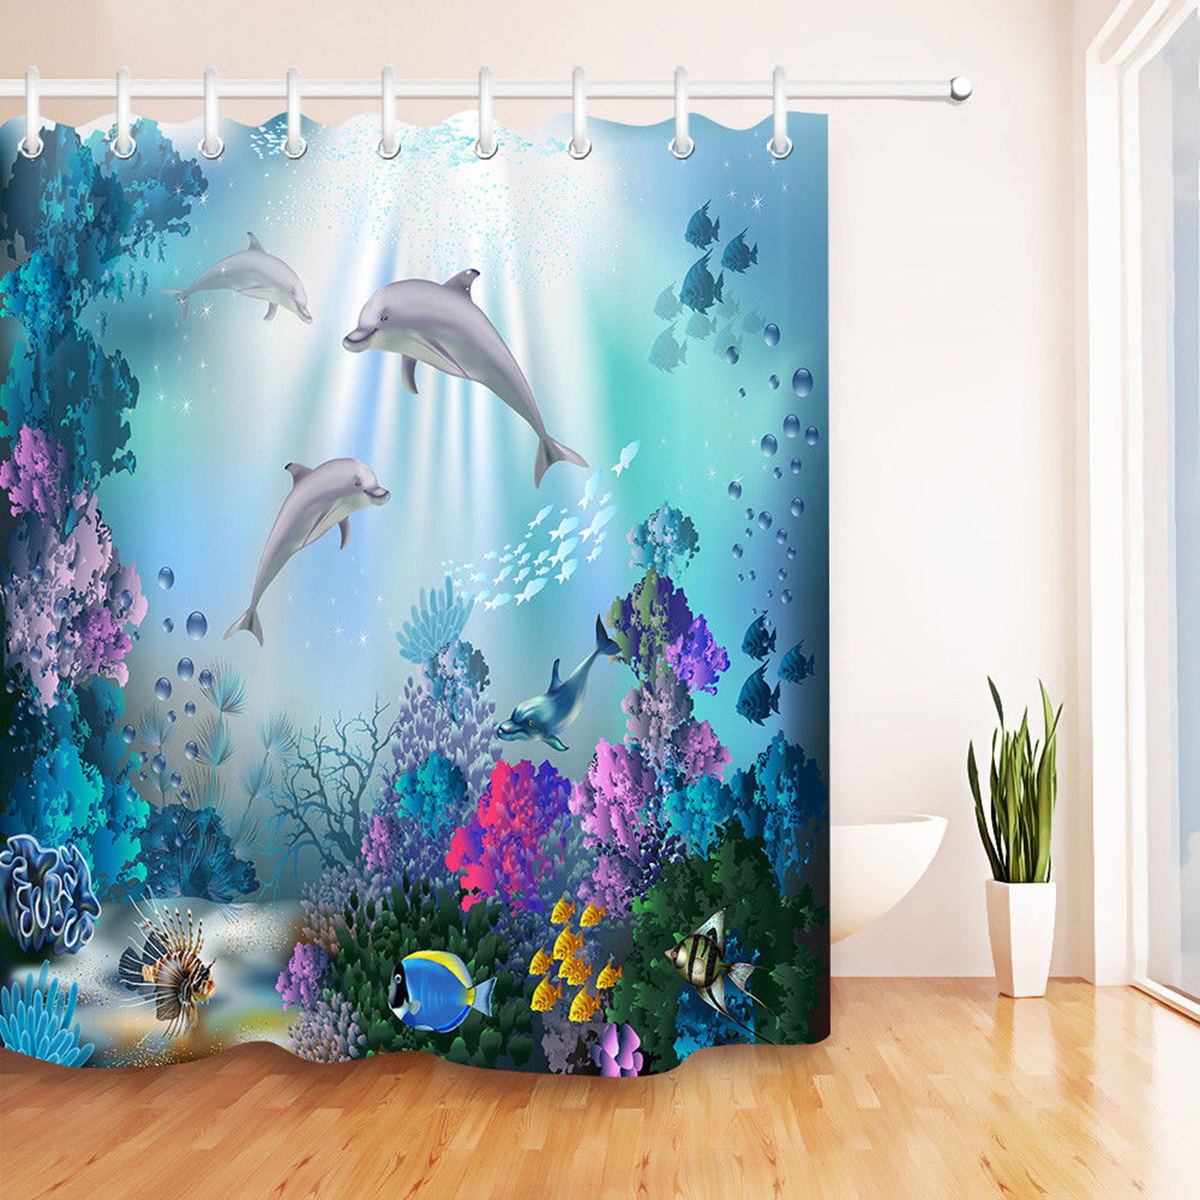 Details About Shower Curtain Waterproof Underwater World Dolphin Bathroom Mat Hook Home